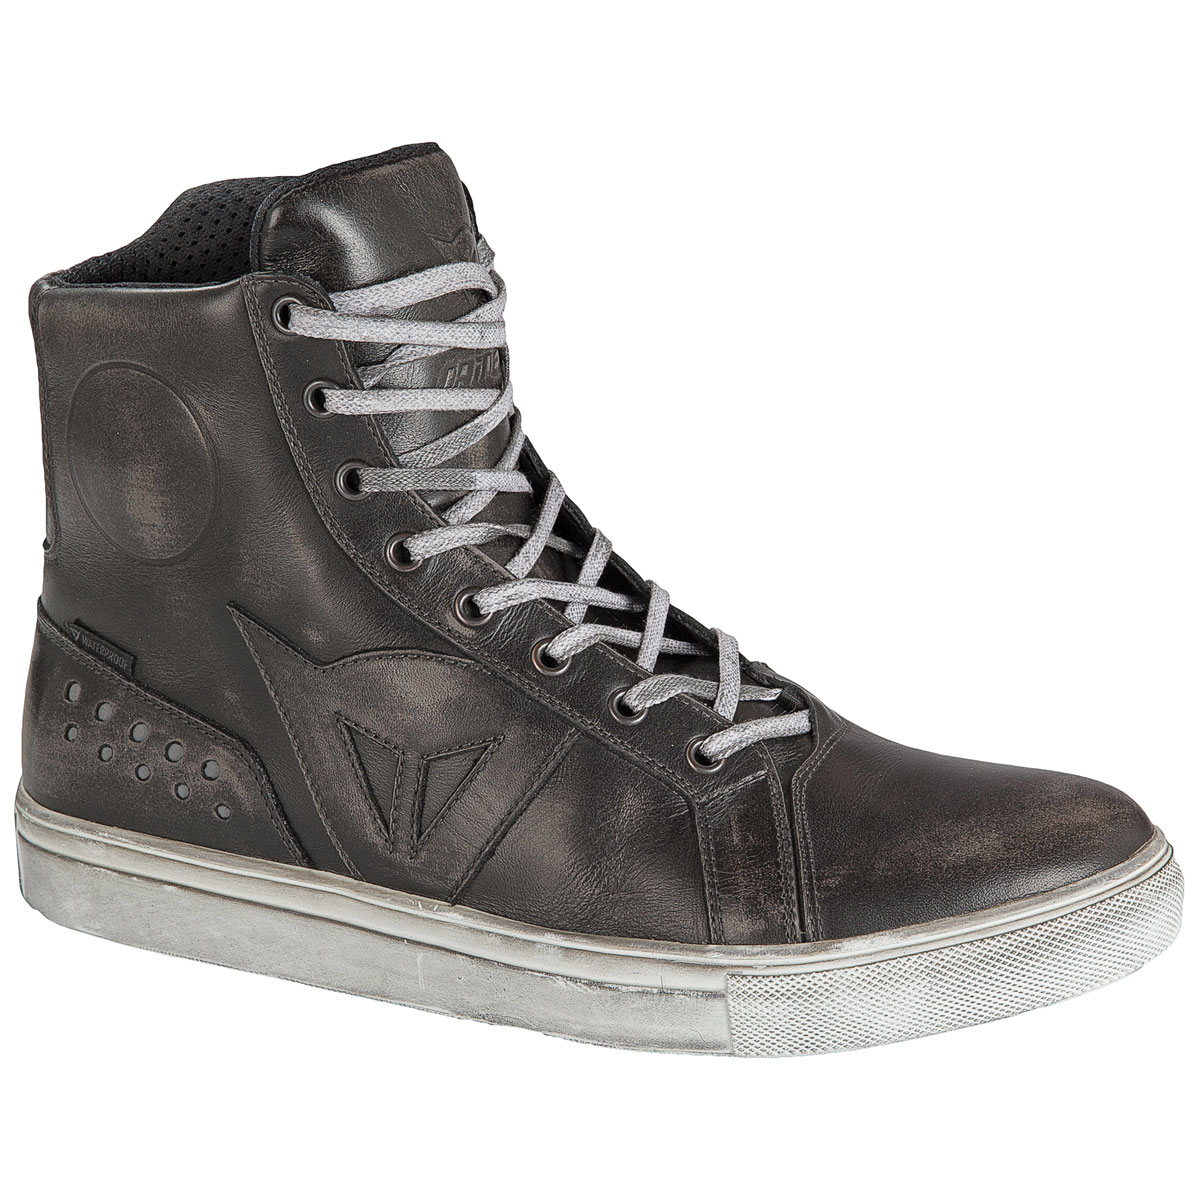 Dainese Men's Street Rocker D-WP Black Shoes